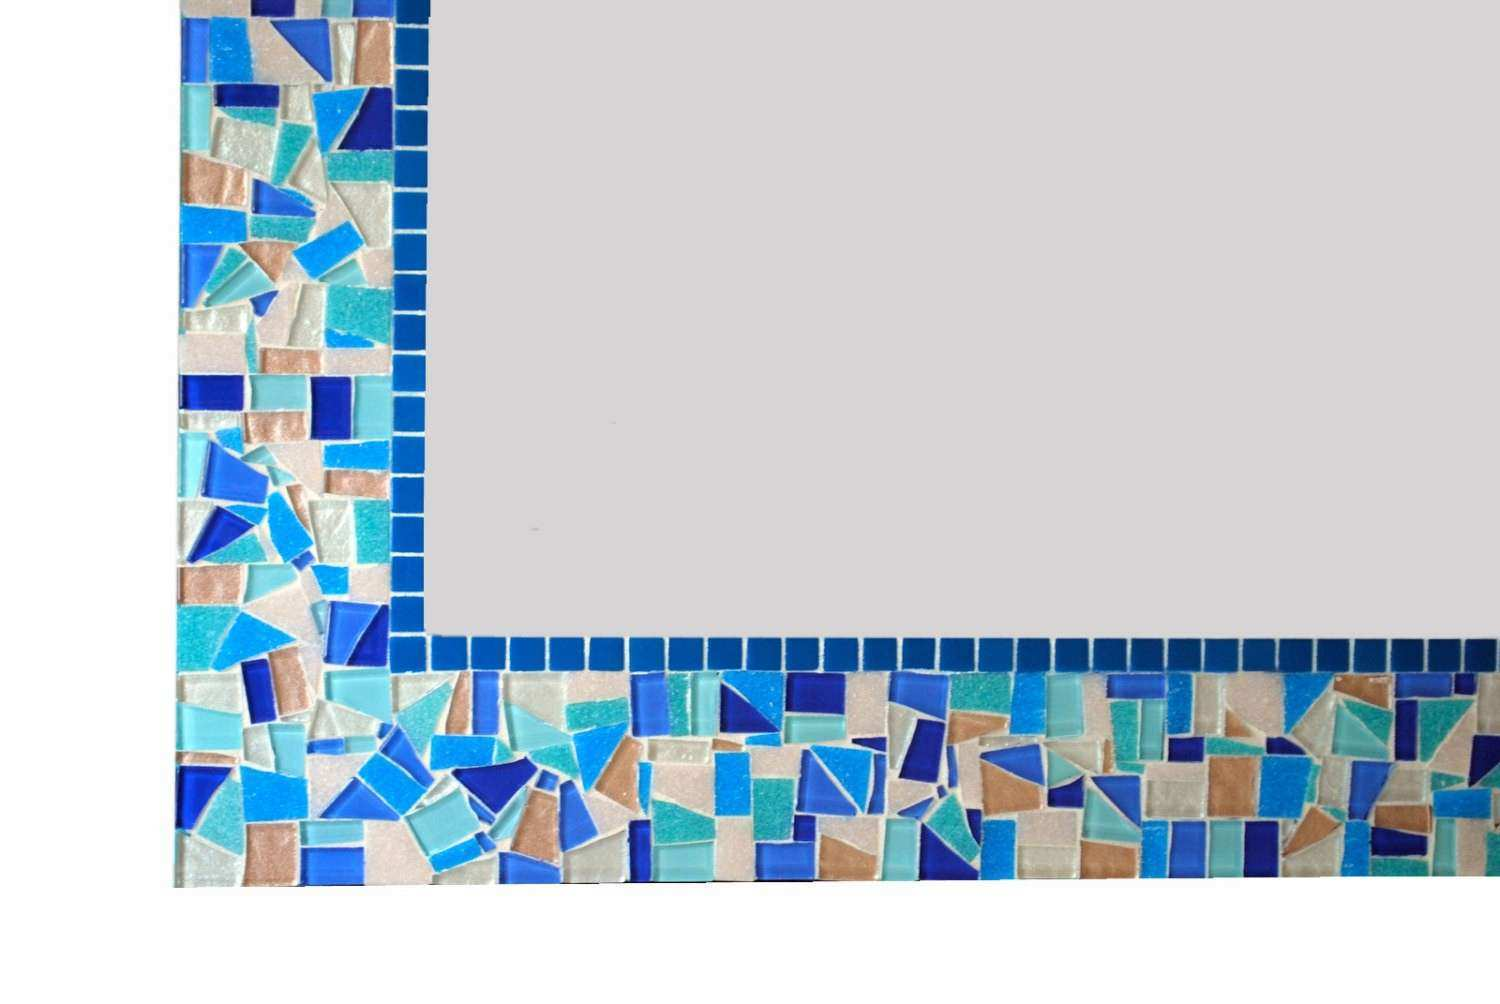 Blue Mosaic Mirror Bathroom Decor Handcrafted Wall Art